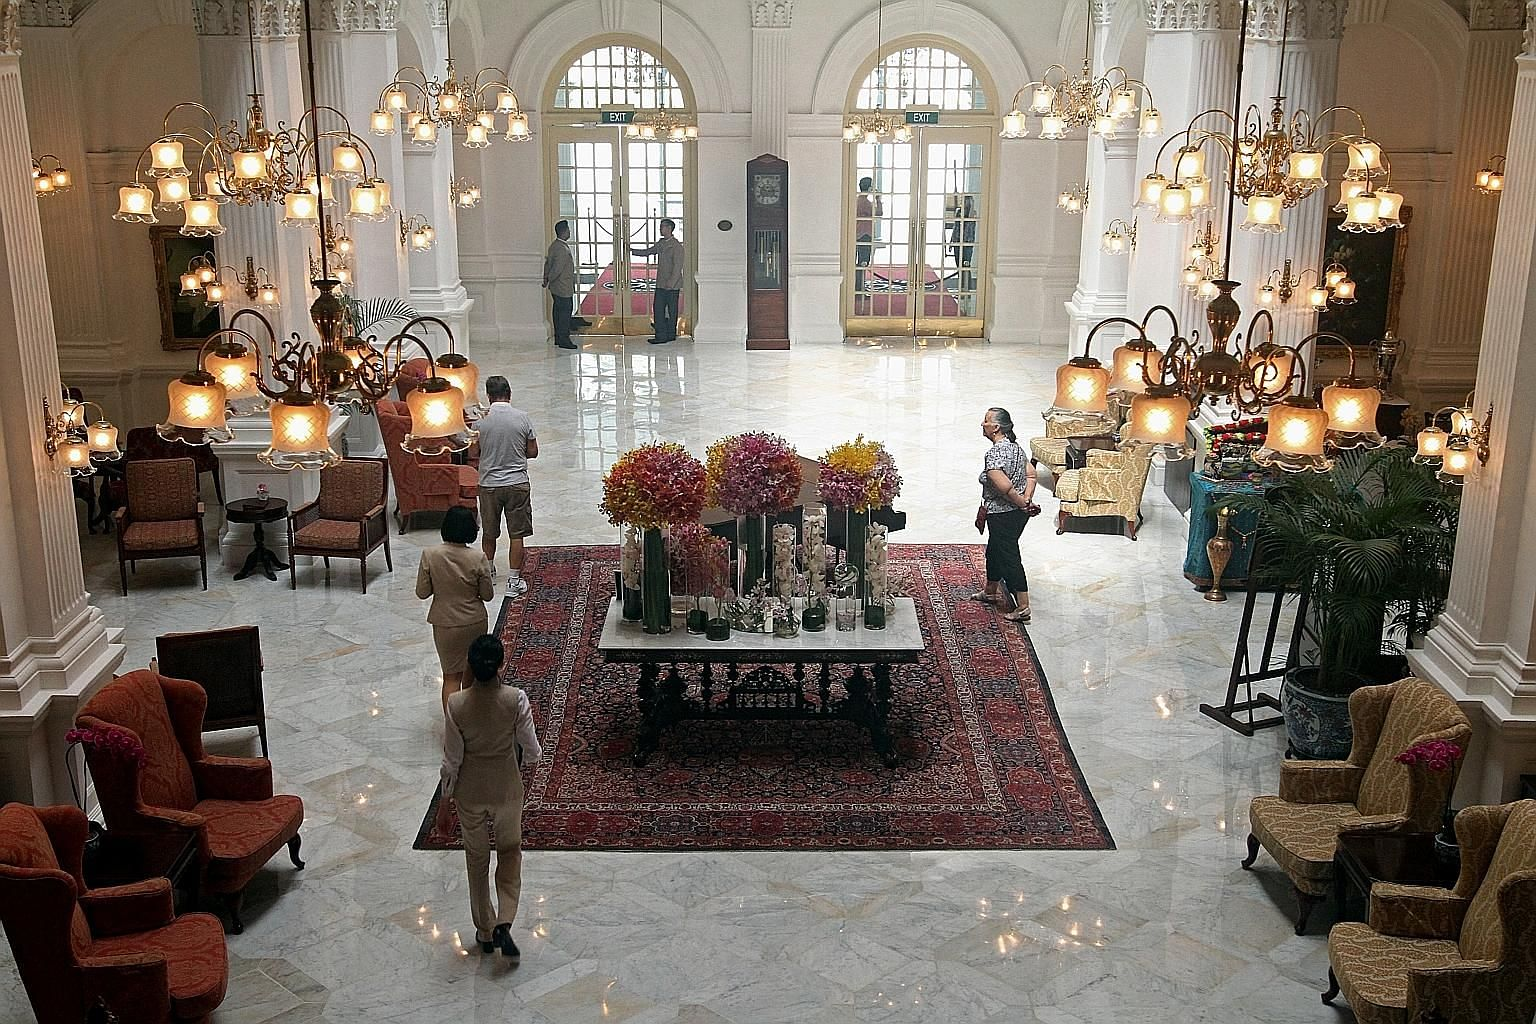 Raffles Hotel, which was featured in the Hollywood hit movie Crazy Rich Asians, is due to reopen next year after a refurbishment. Average occupancy rates in Singapore hotels touched 87 per cent this year, the highest in a decade, property firm Cushma